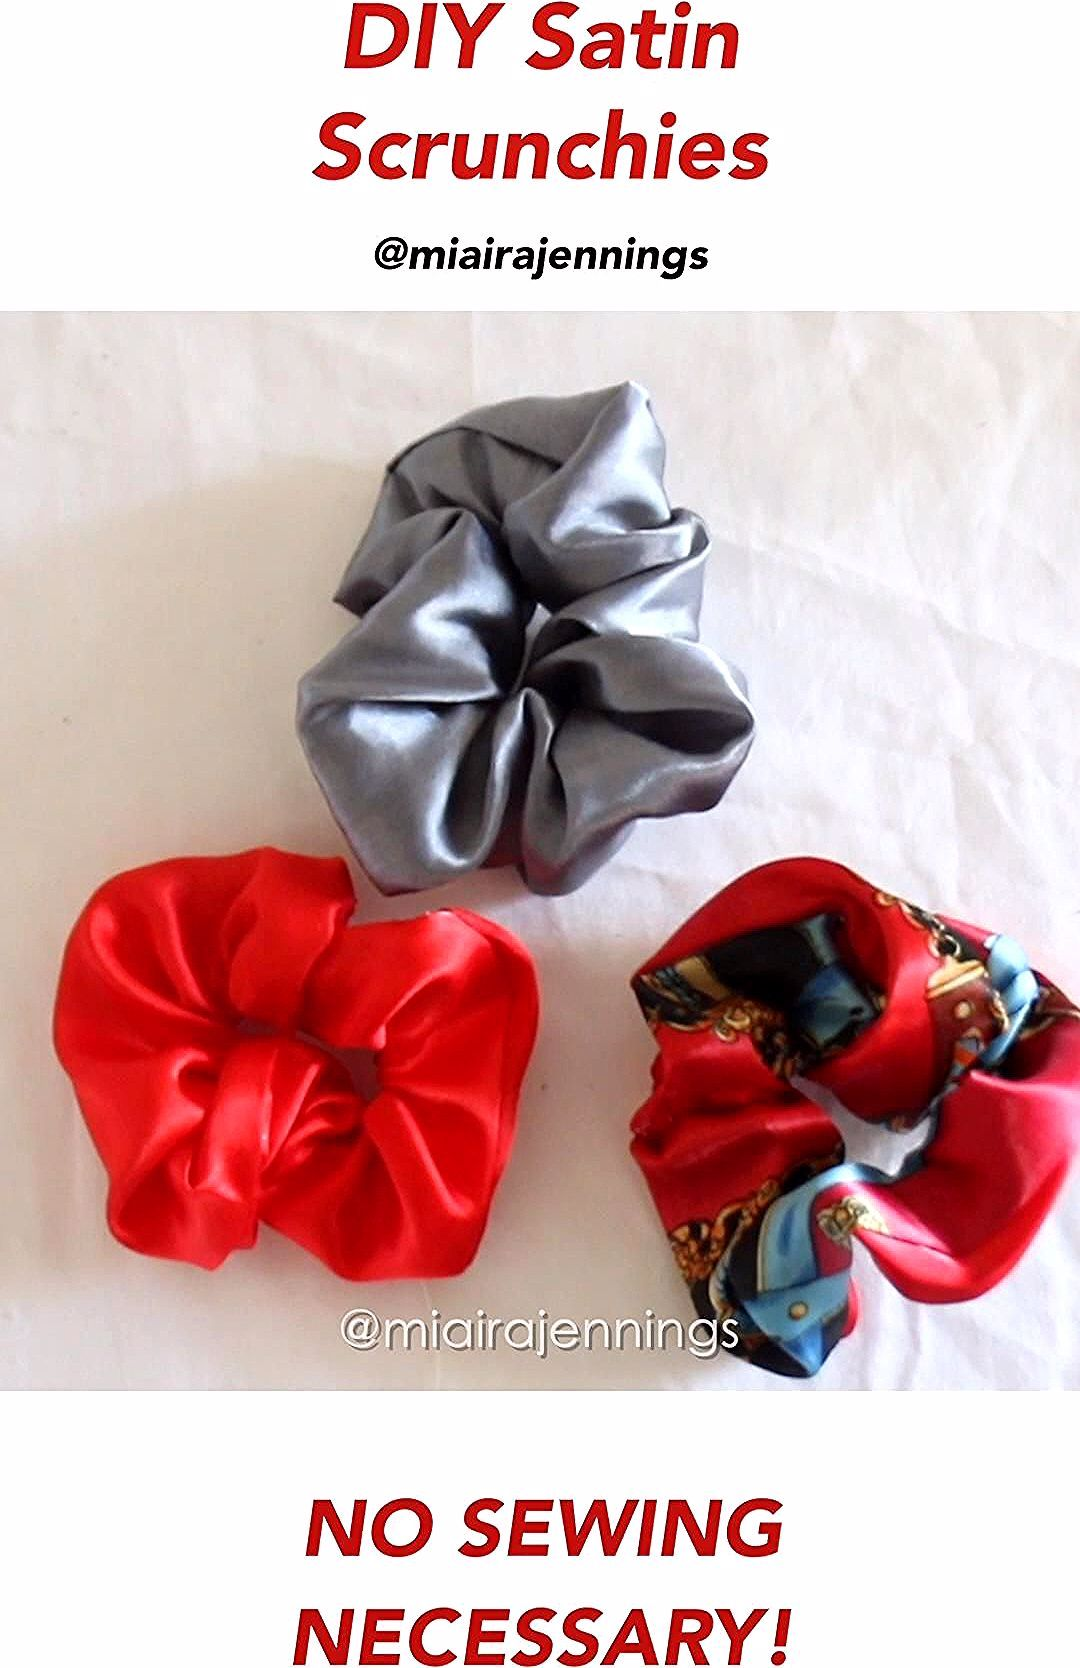 Here's how to easily make your own satin scrunchies in just a few minutes with no sewing!   #diy #scrunchie #scrunchies #nosew #satin #naturalhair #naturalhairstyles #hair #hairaccessories #haircare #curlyhair #kinkyhair